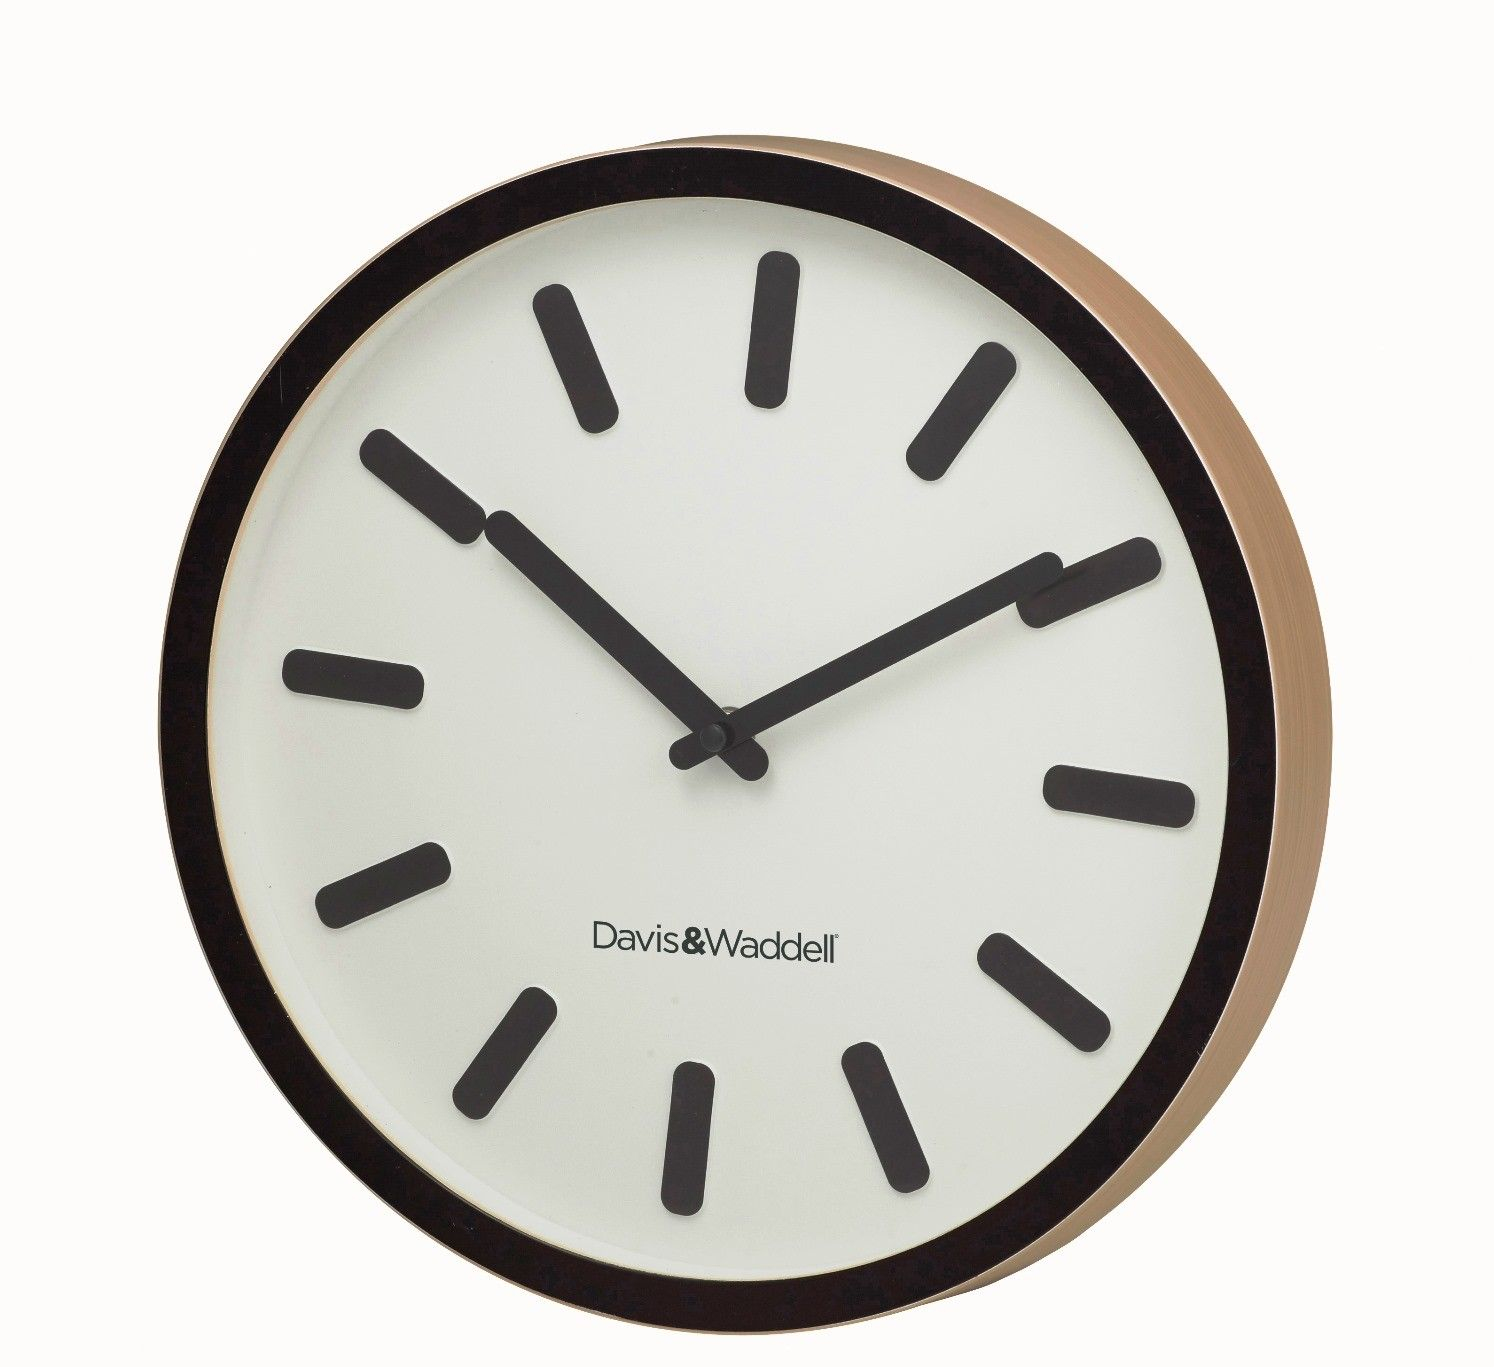 Davis And Waddell Carter Wall Clock Round Plastic Face Timber